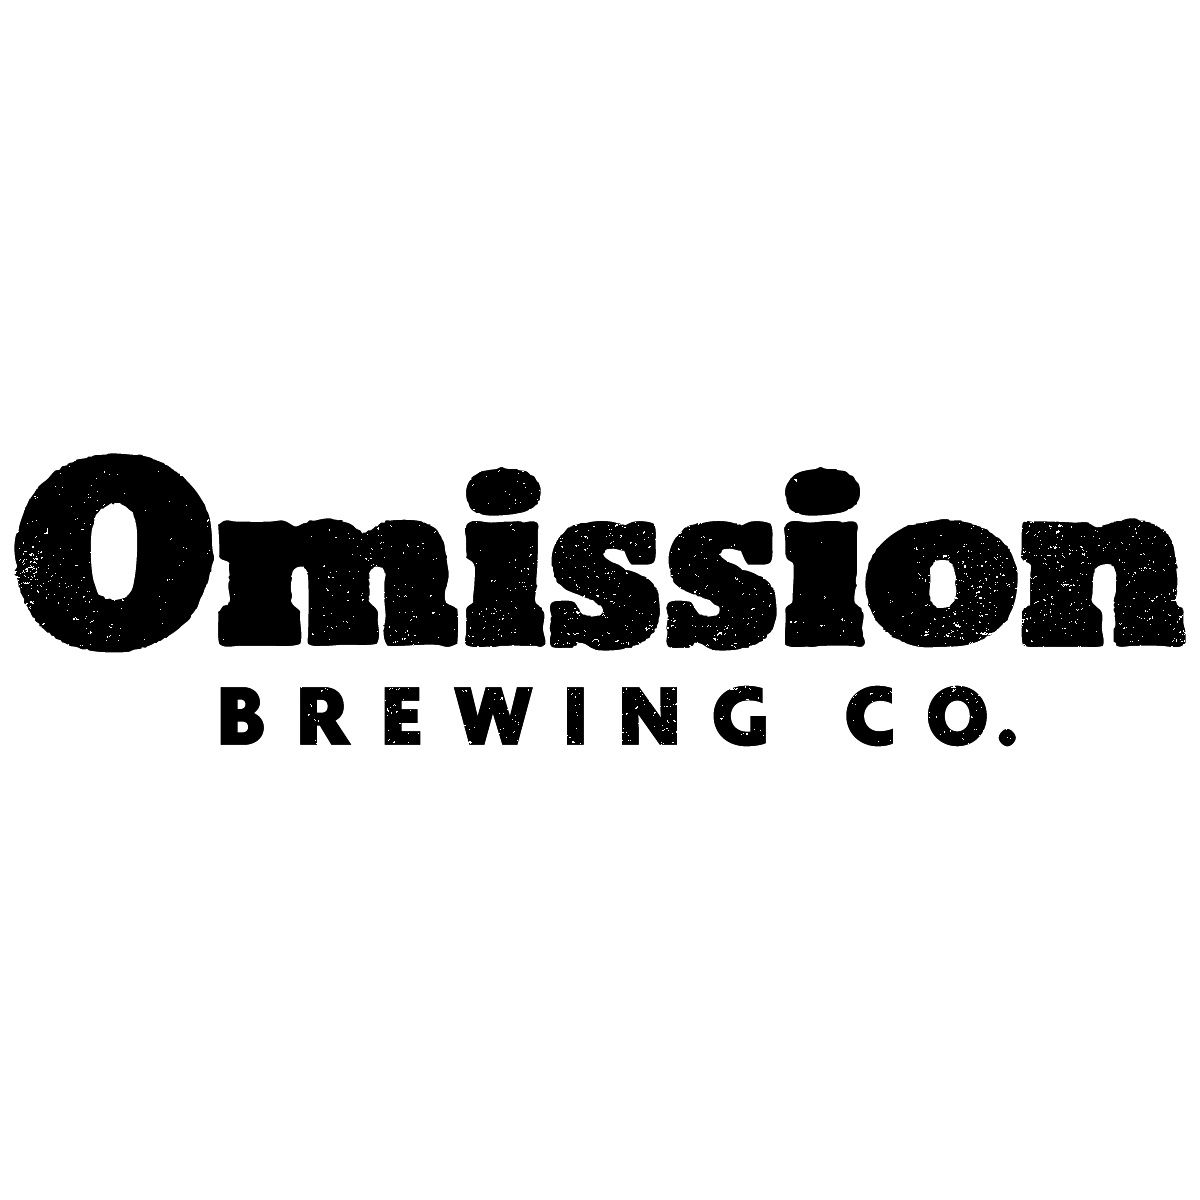 Founded in 2012, Omission Brewing Co. is the first craft beer brand in the U.S. focused exclusively on brewing great-tasting beers with traditional beer ingredients, including malted barley, that are specially crafted to remove gluten. To learn more, please visit  Omission .